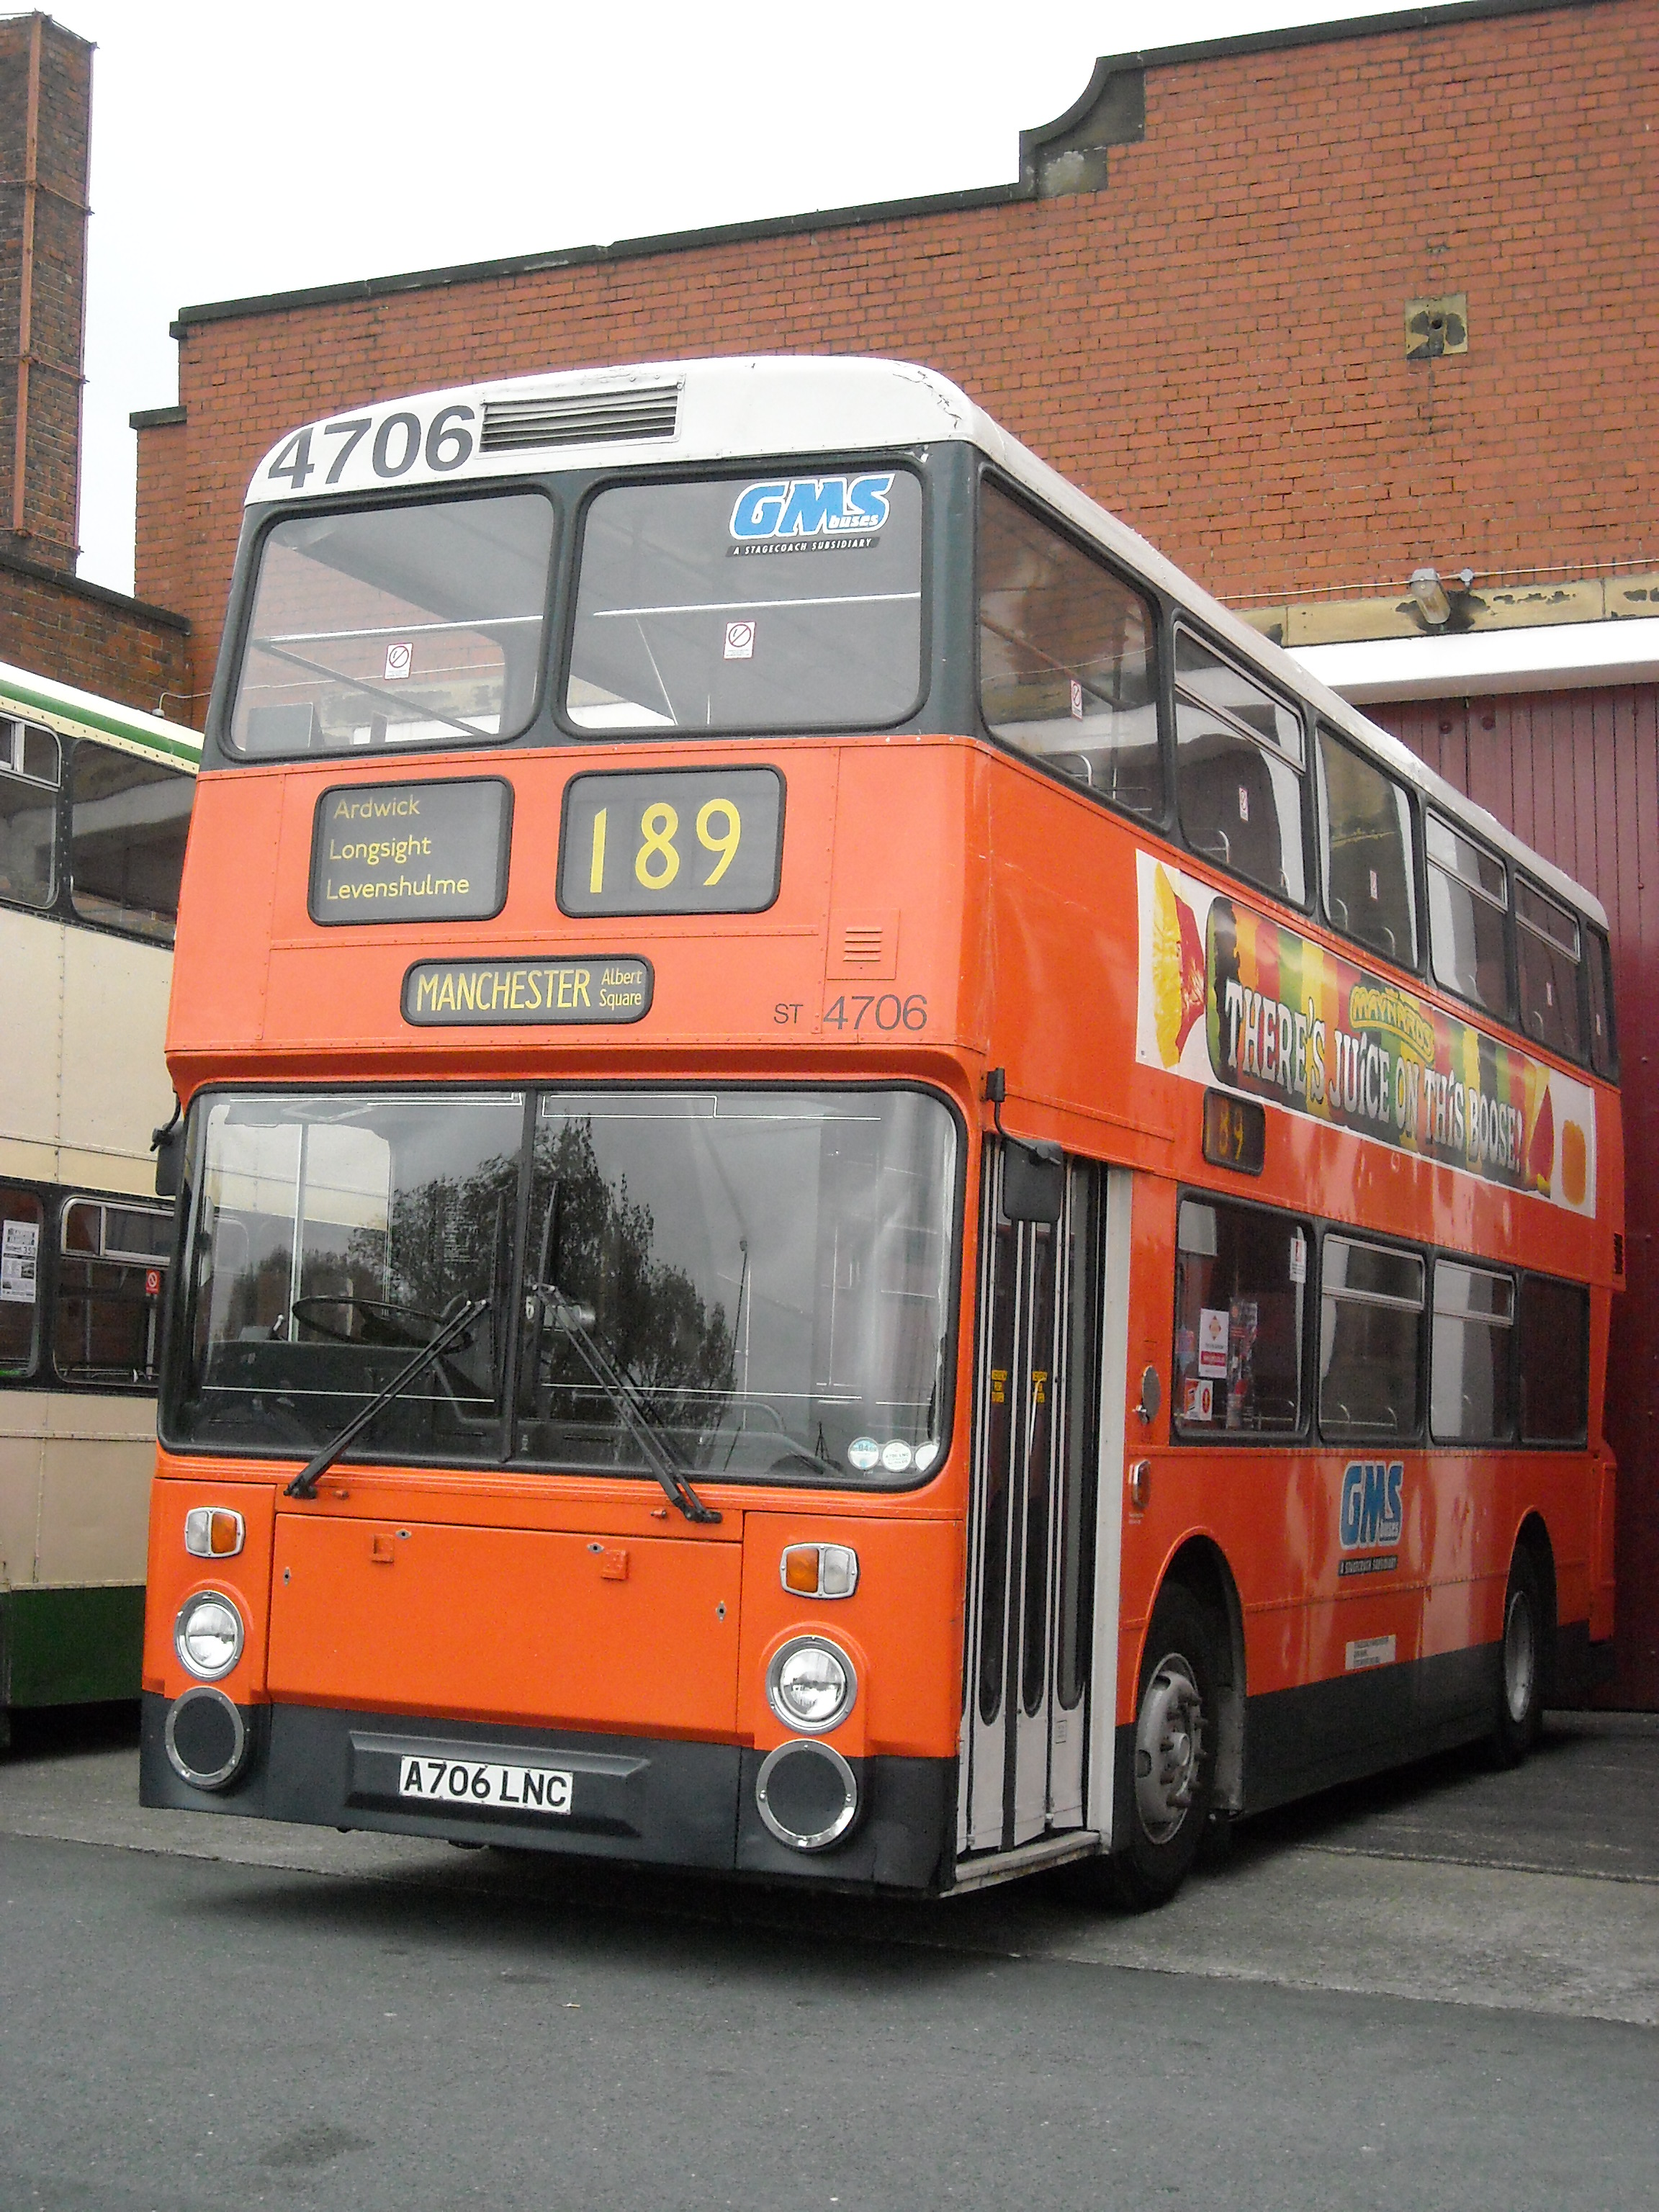 File Gm Buses South Bus 4706 A706 Lnc Mmt Atlantean 50